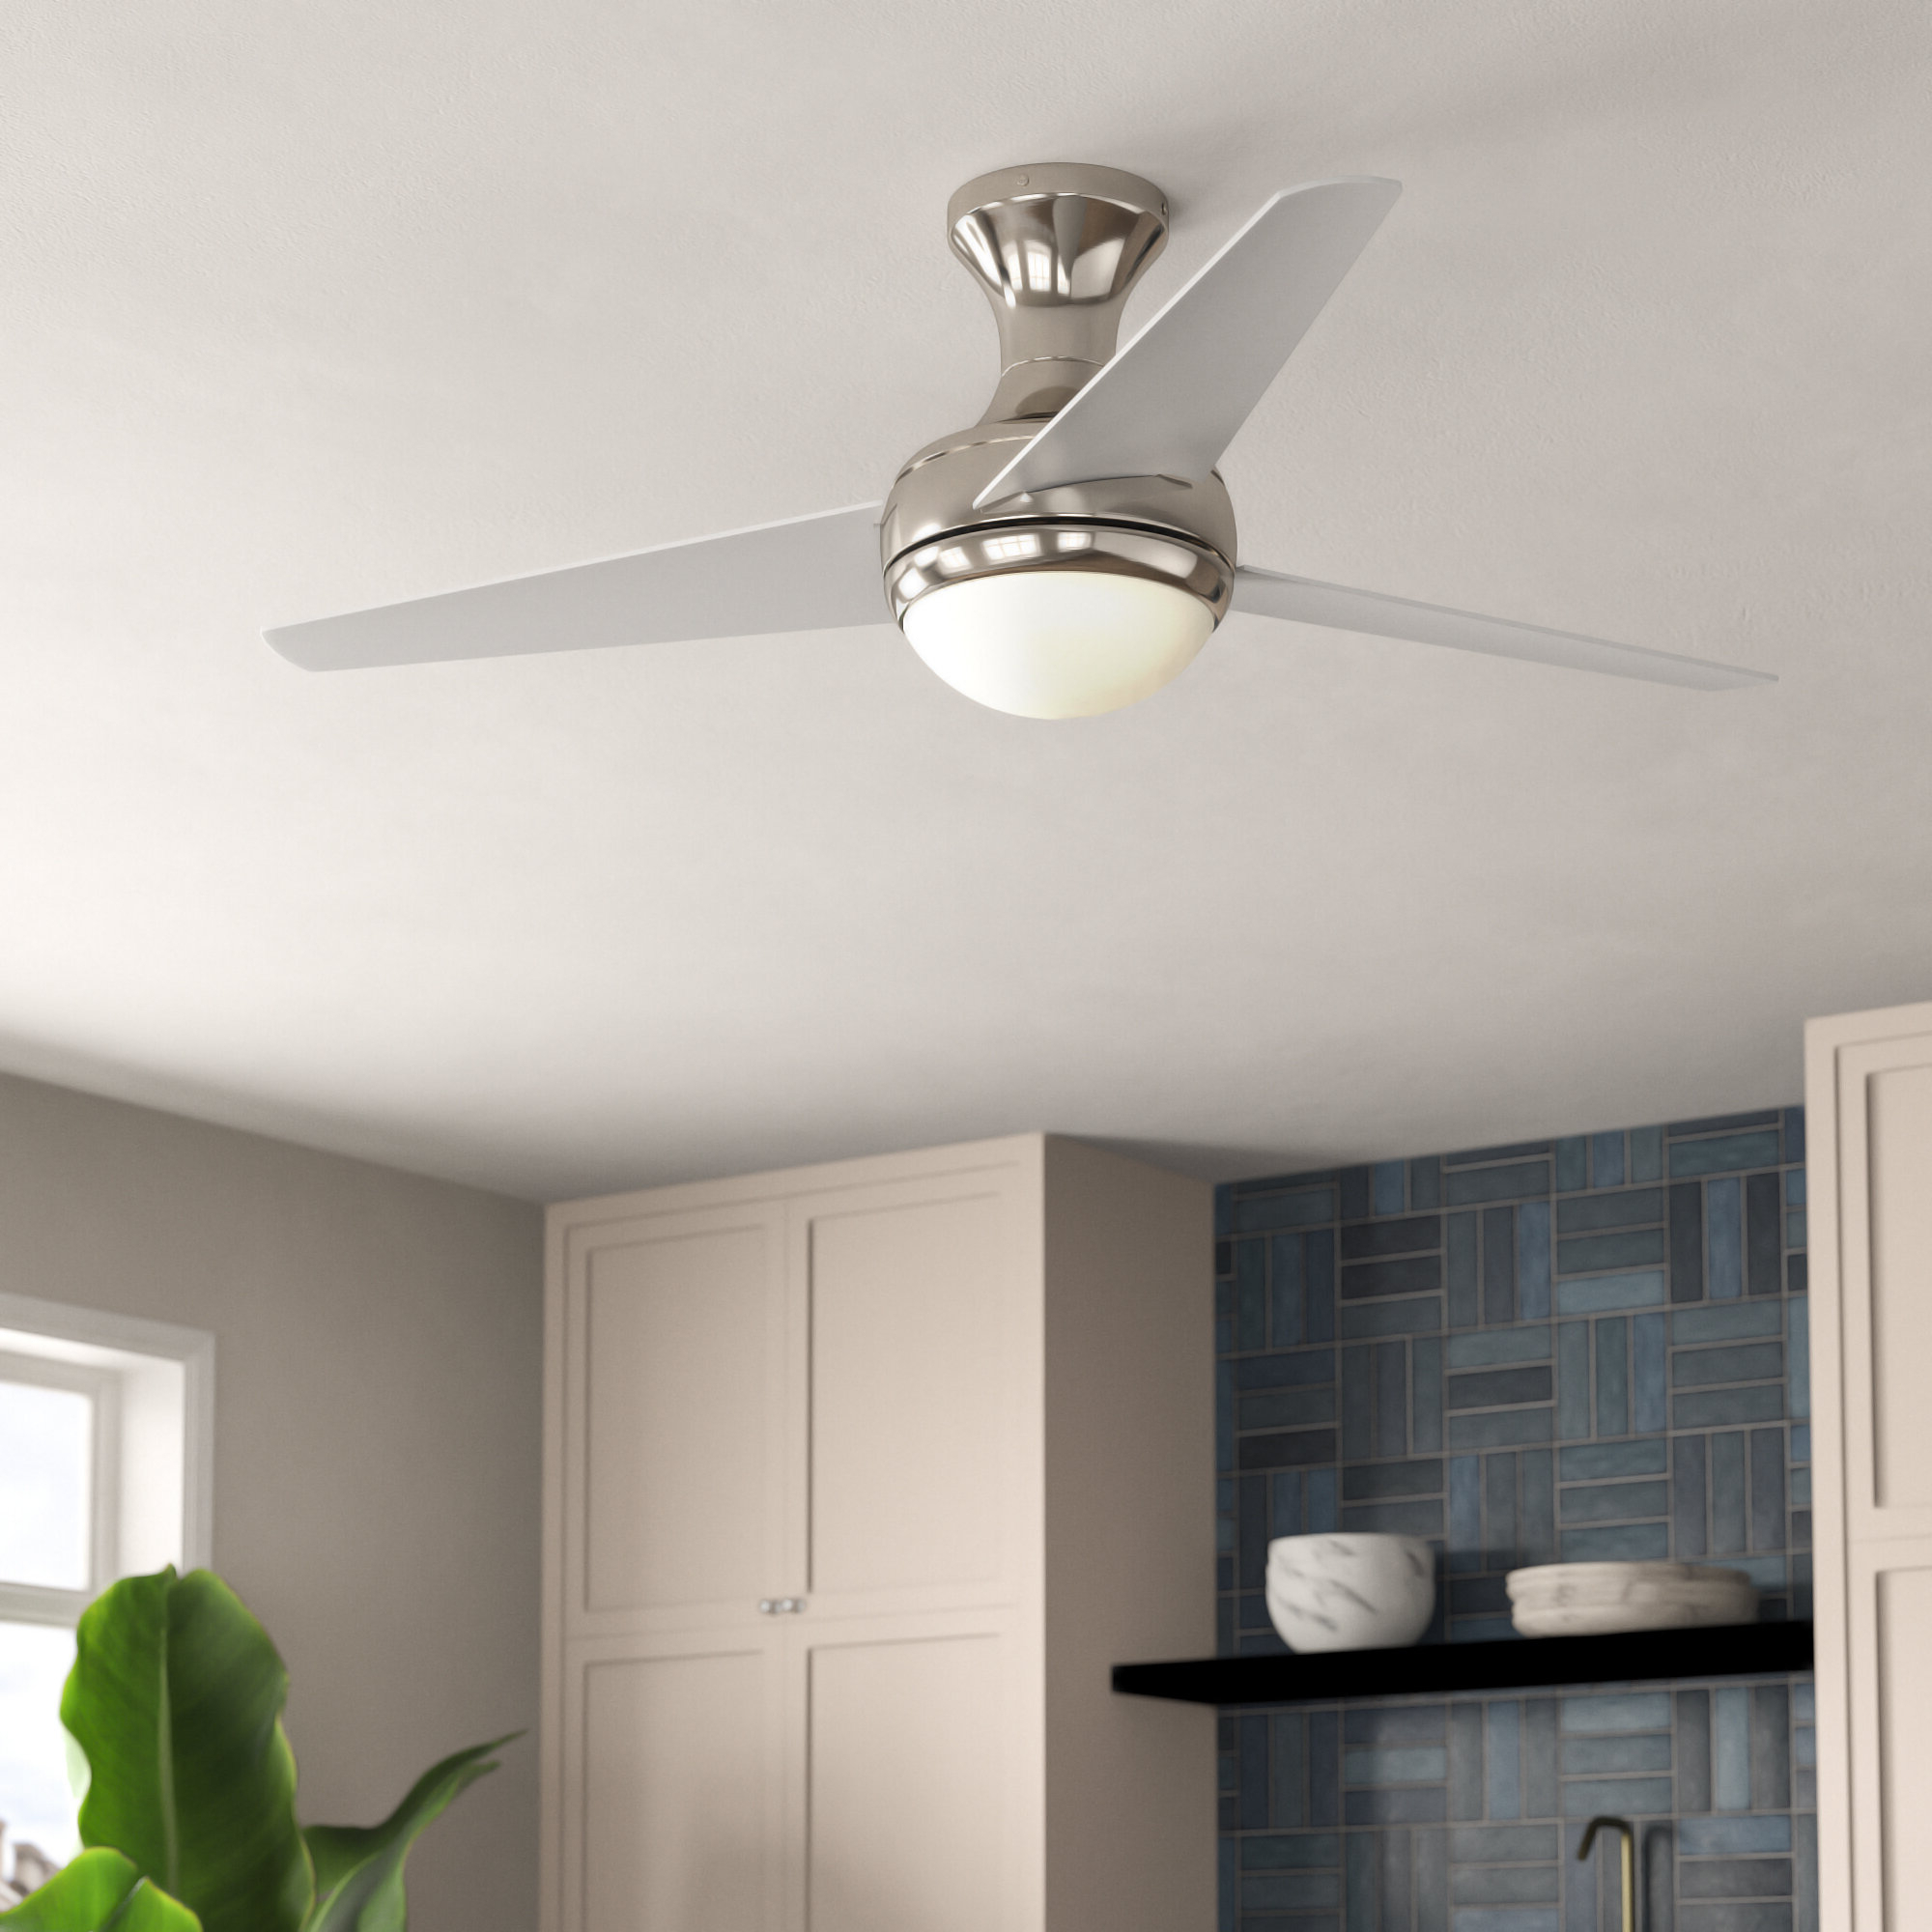 Corry 6 Blade Ceiling Fans Regarding Most Current Modern Mercury Row Ceiling Fans (View 20 of 20)